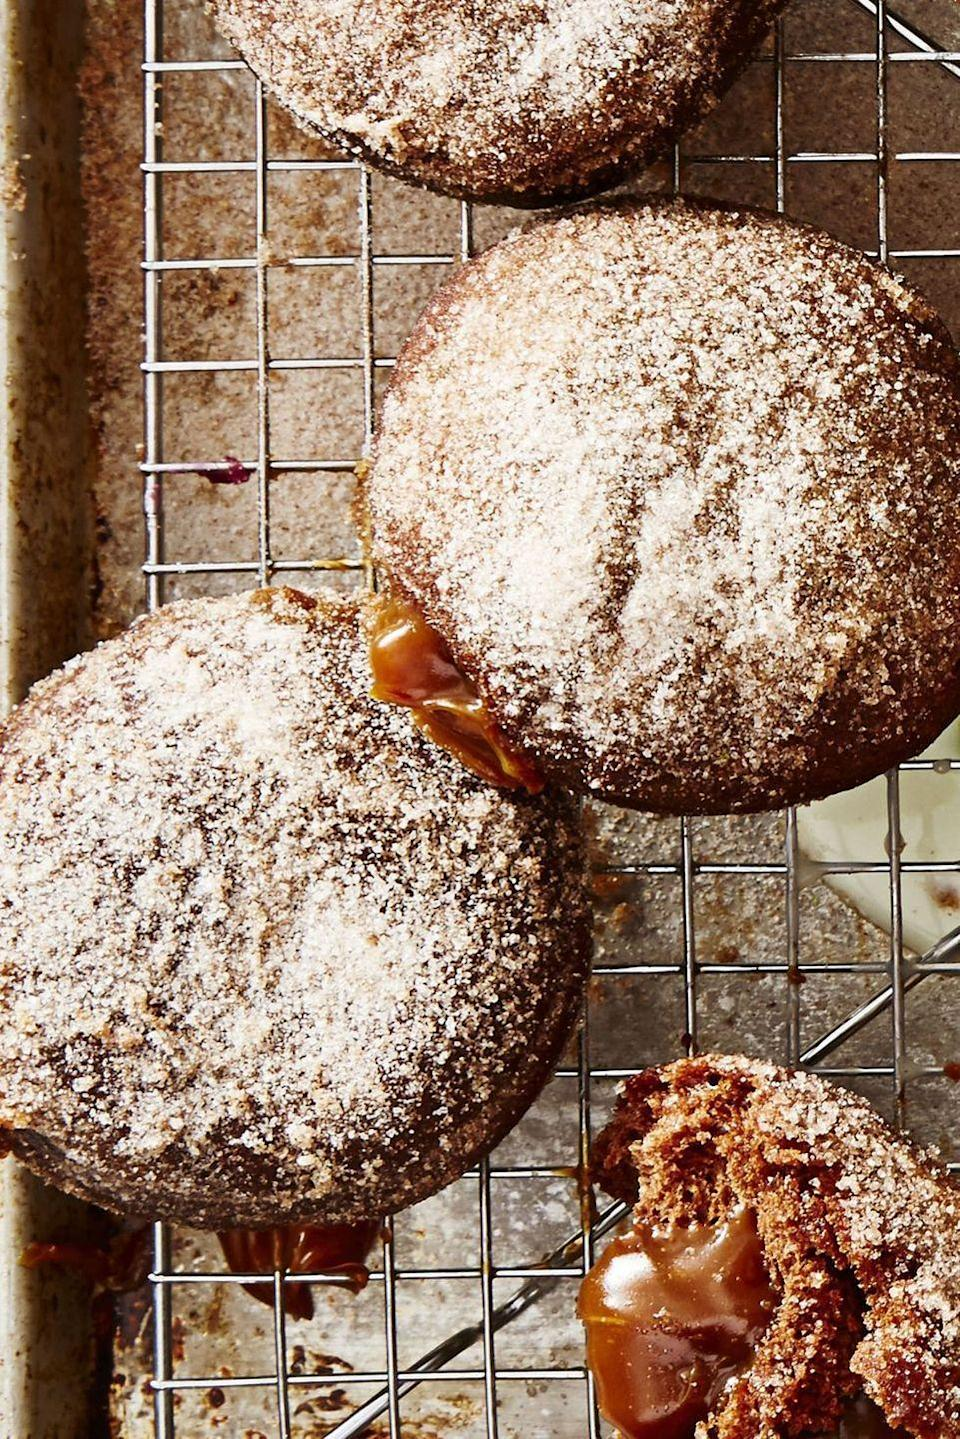 """<p>Dulce de Leche, A.K.A. a creamy Spanish caramel sauce, is the perfect filling for cinnamon-chocolate cookies.</p><p><em><a href=""""https://www.goodhousekeeping.com/food-recipes/a48181/choco-churro-donuts-with-dulce-de-leche-recipe/"""" rel=""""nofollow noopener"""" target=""""_blank"""" data-ylk=""""slk:Get the recipe for Choco-Churros with Dulce de Leche »"""" class=""""link rapid-noclick-resp"""">Get the recipe for Choco-Churros with Dulce de Leche »</a></em></p>"""